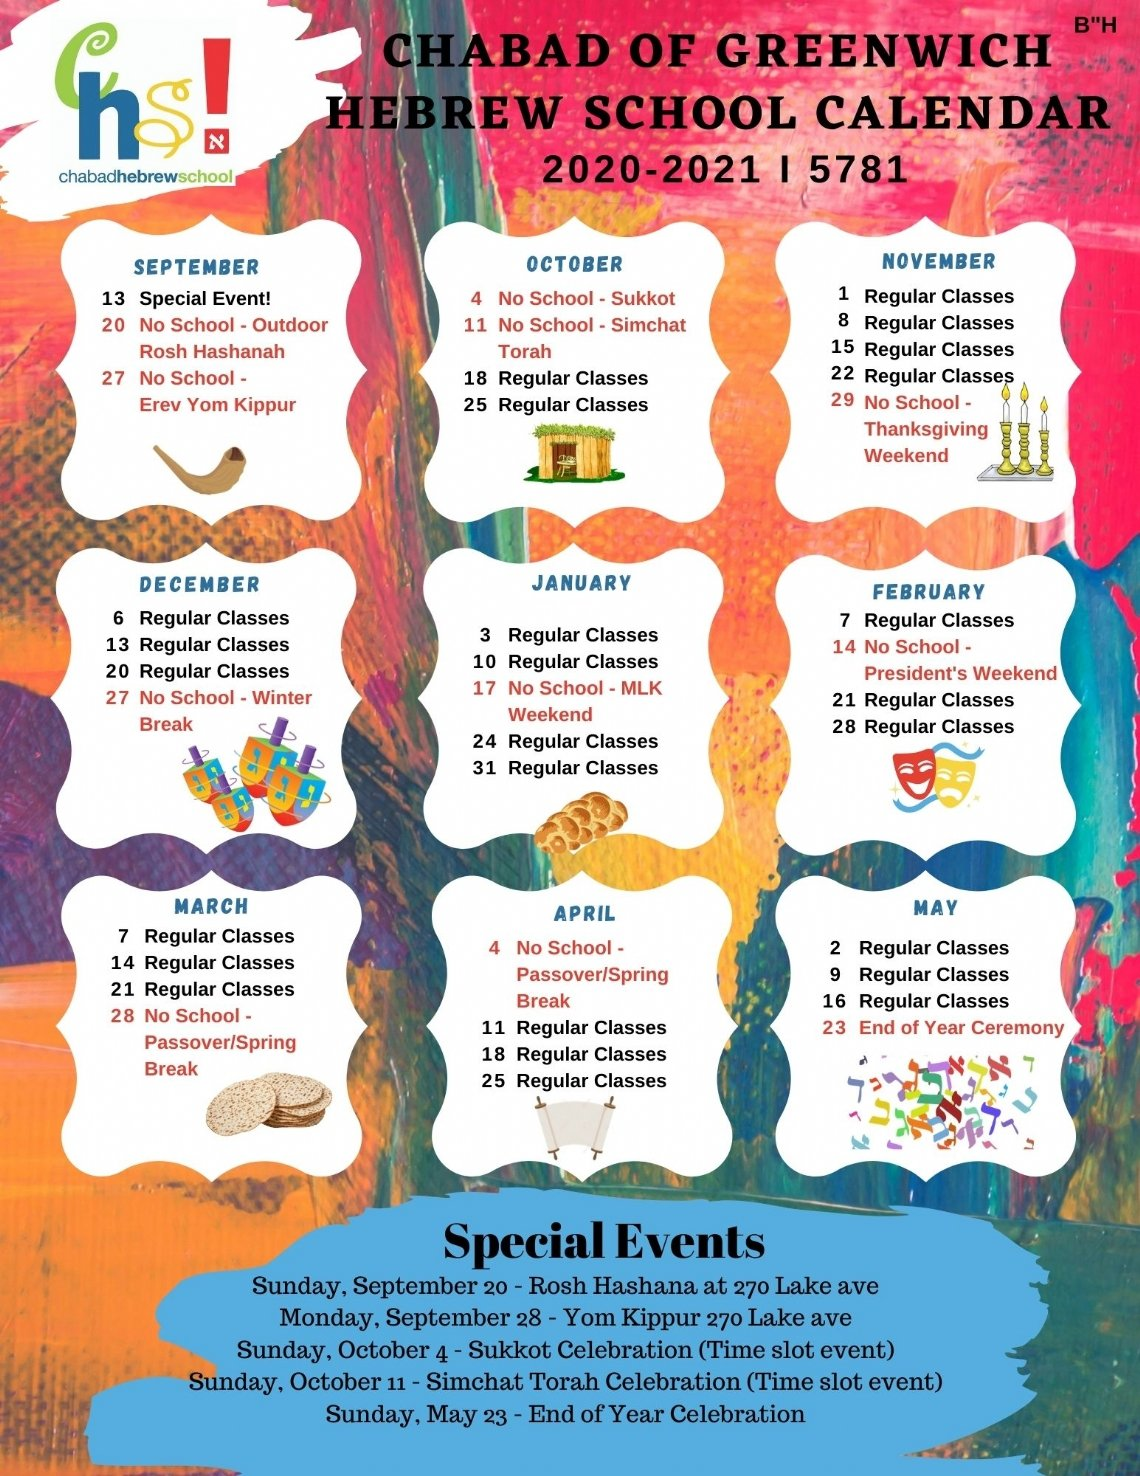 _HEBREW SCHOOL CALENDAR v2 2019- 2020.jpg